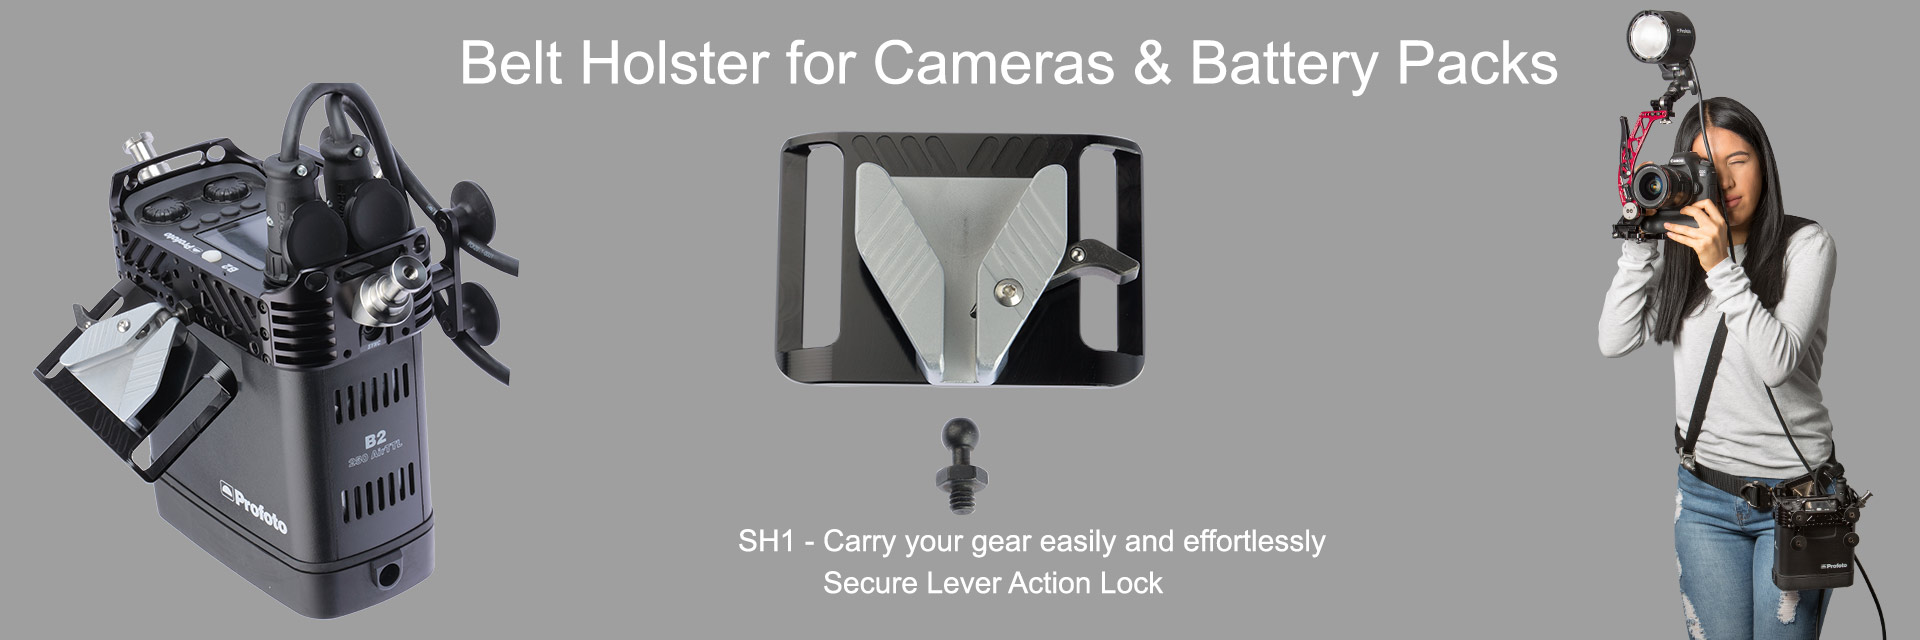 Belt Holster for Profoto B2 battery pack